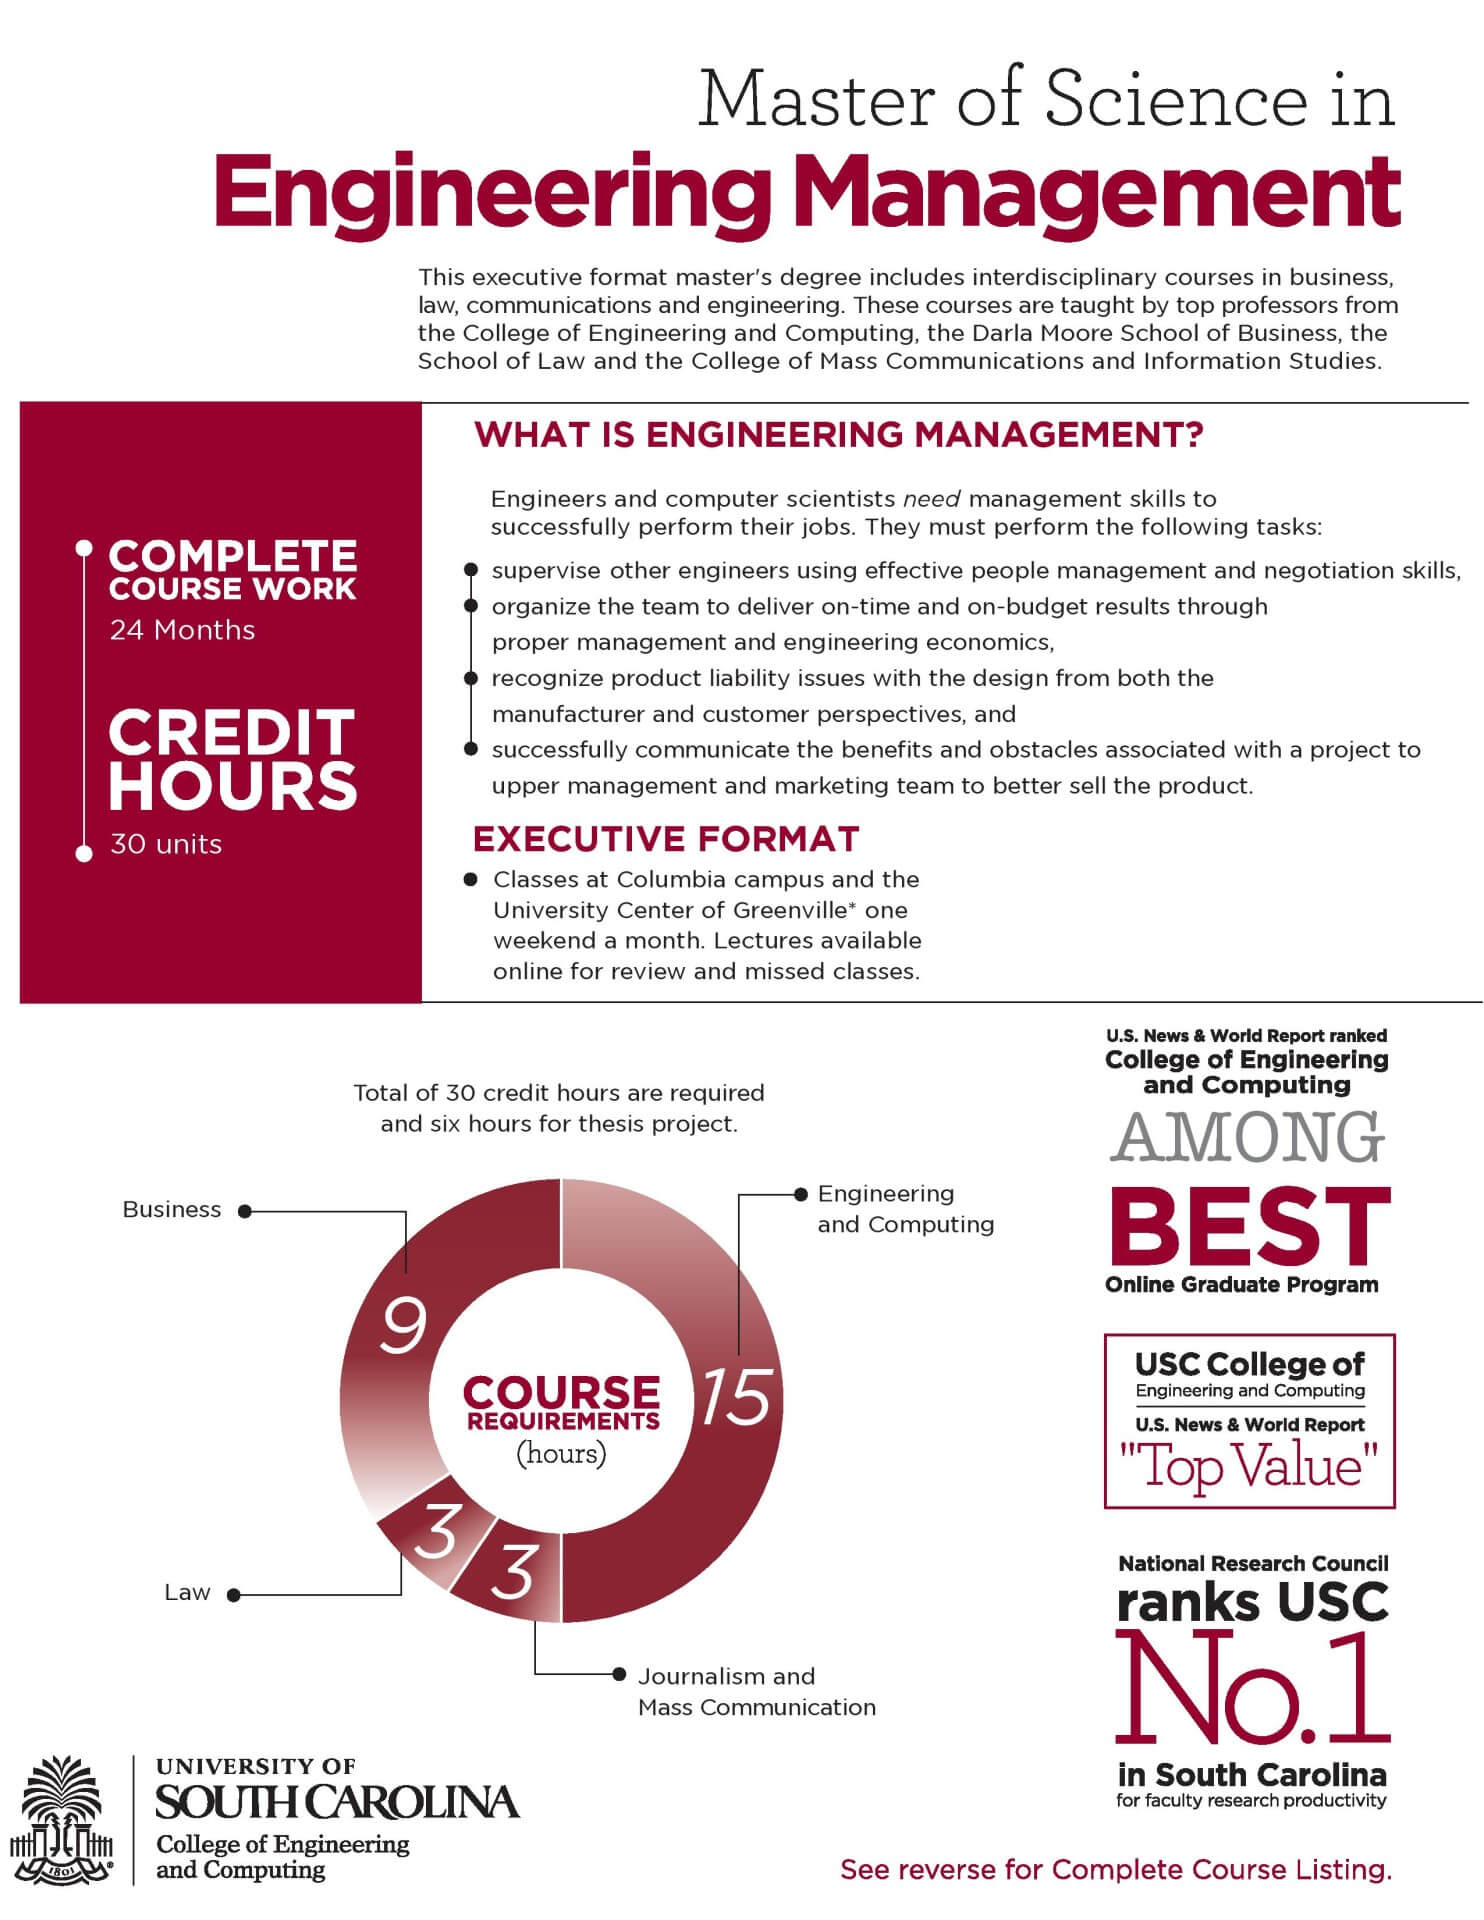 engineering management at usc